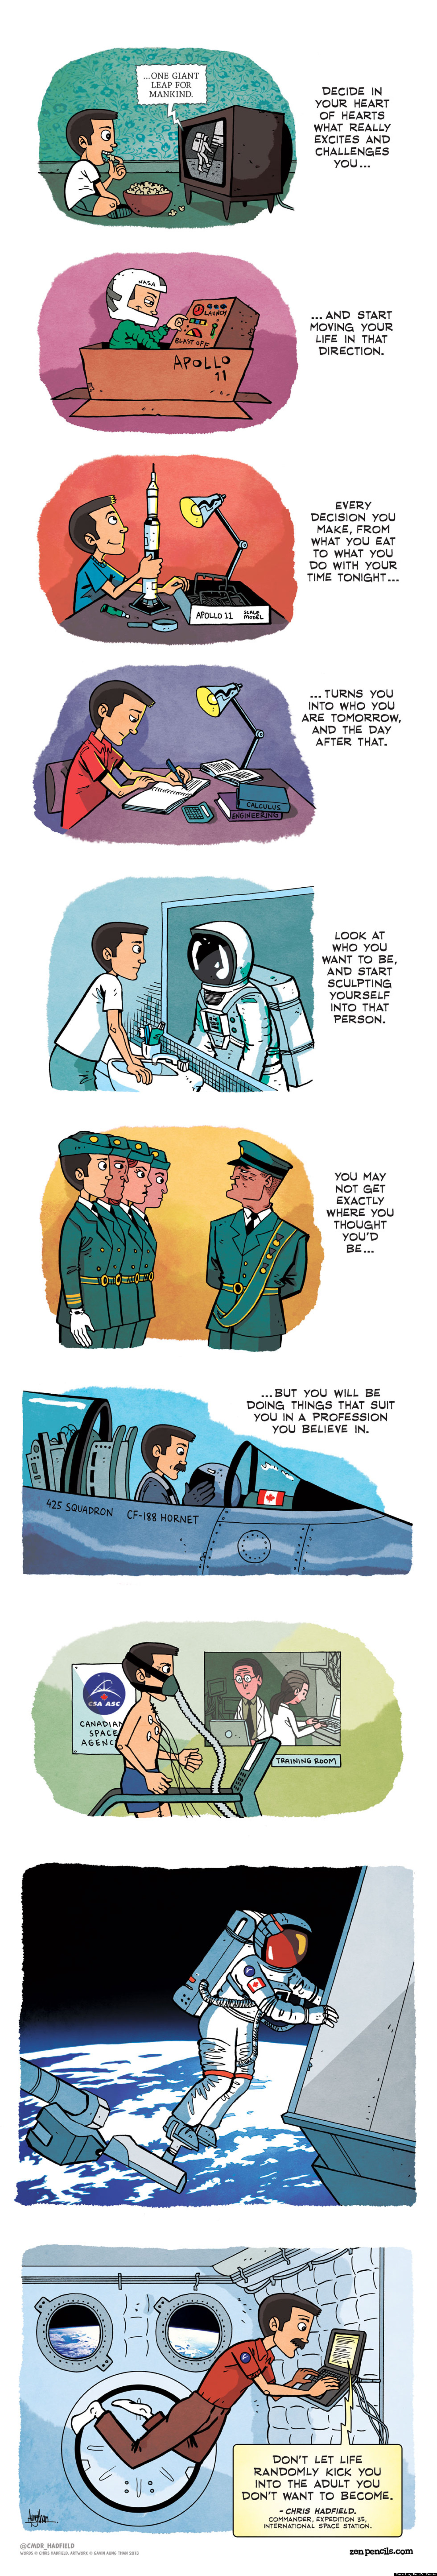 LOOK: Get Inspired By This Chris Hadfield Cartoon